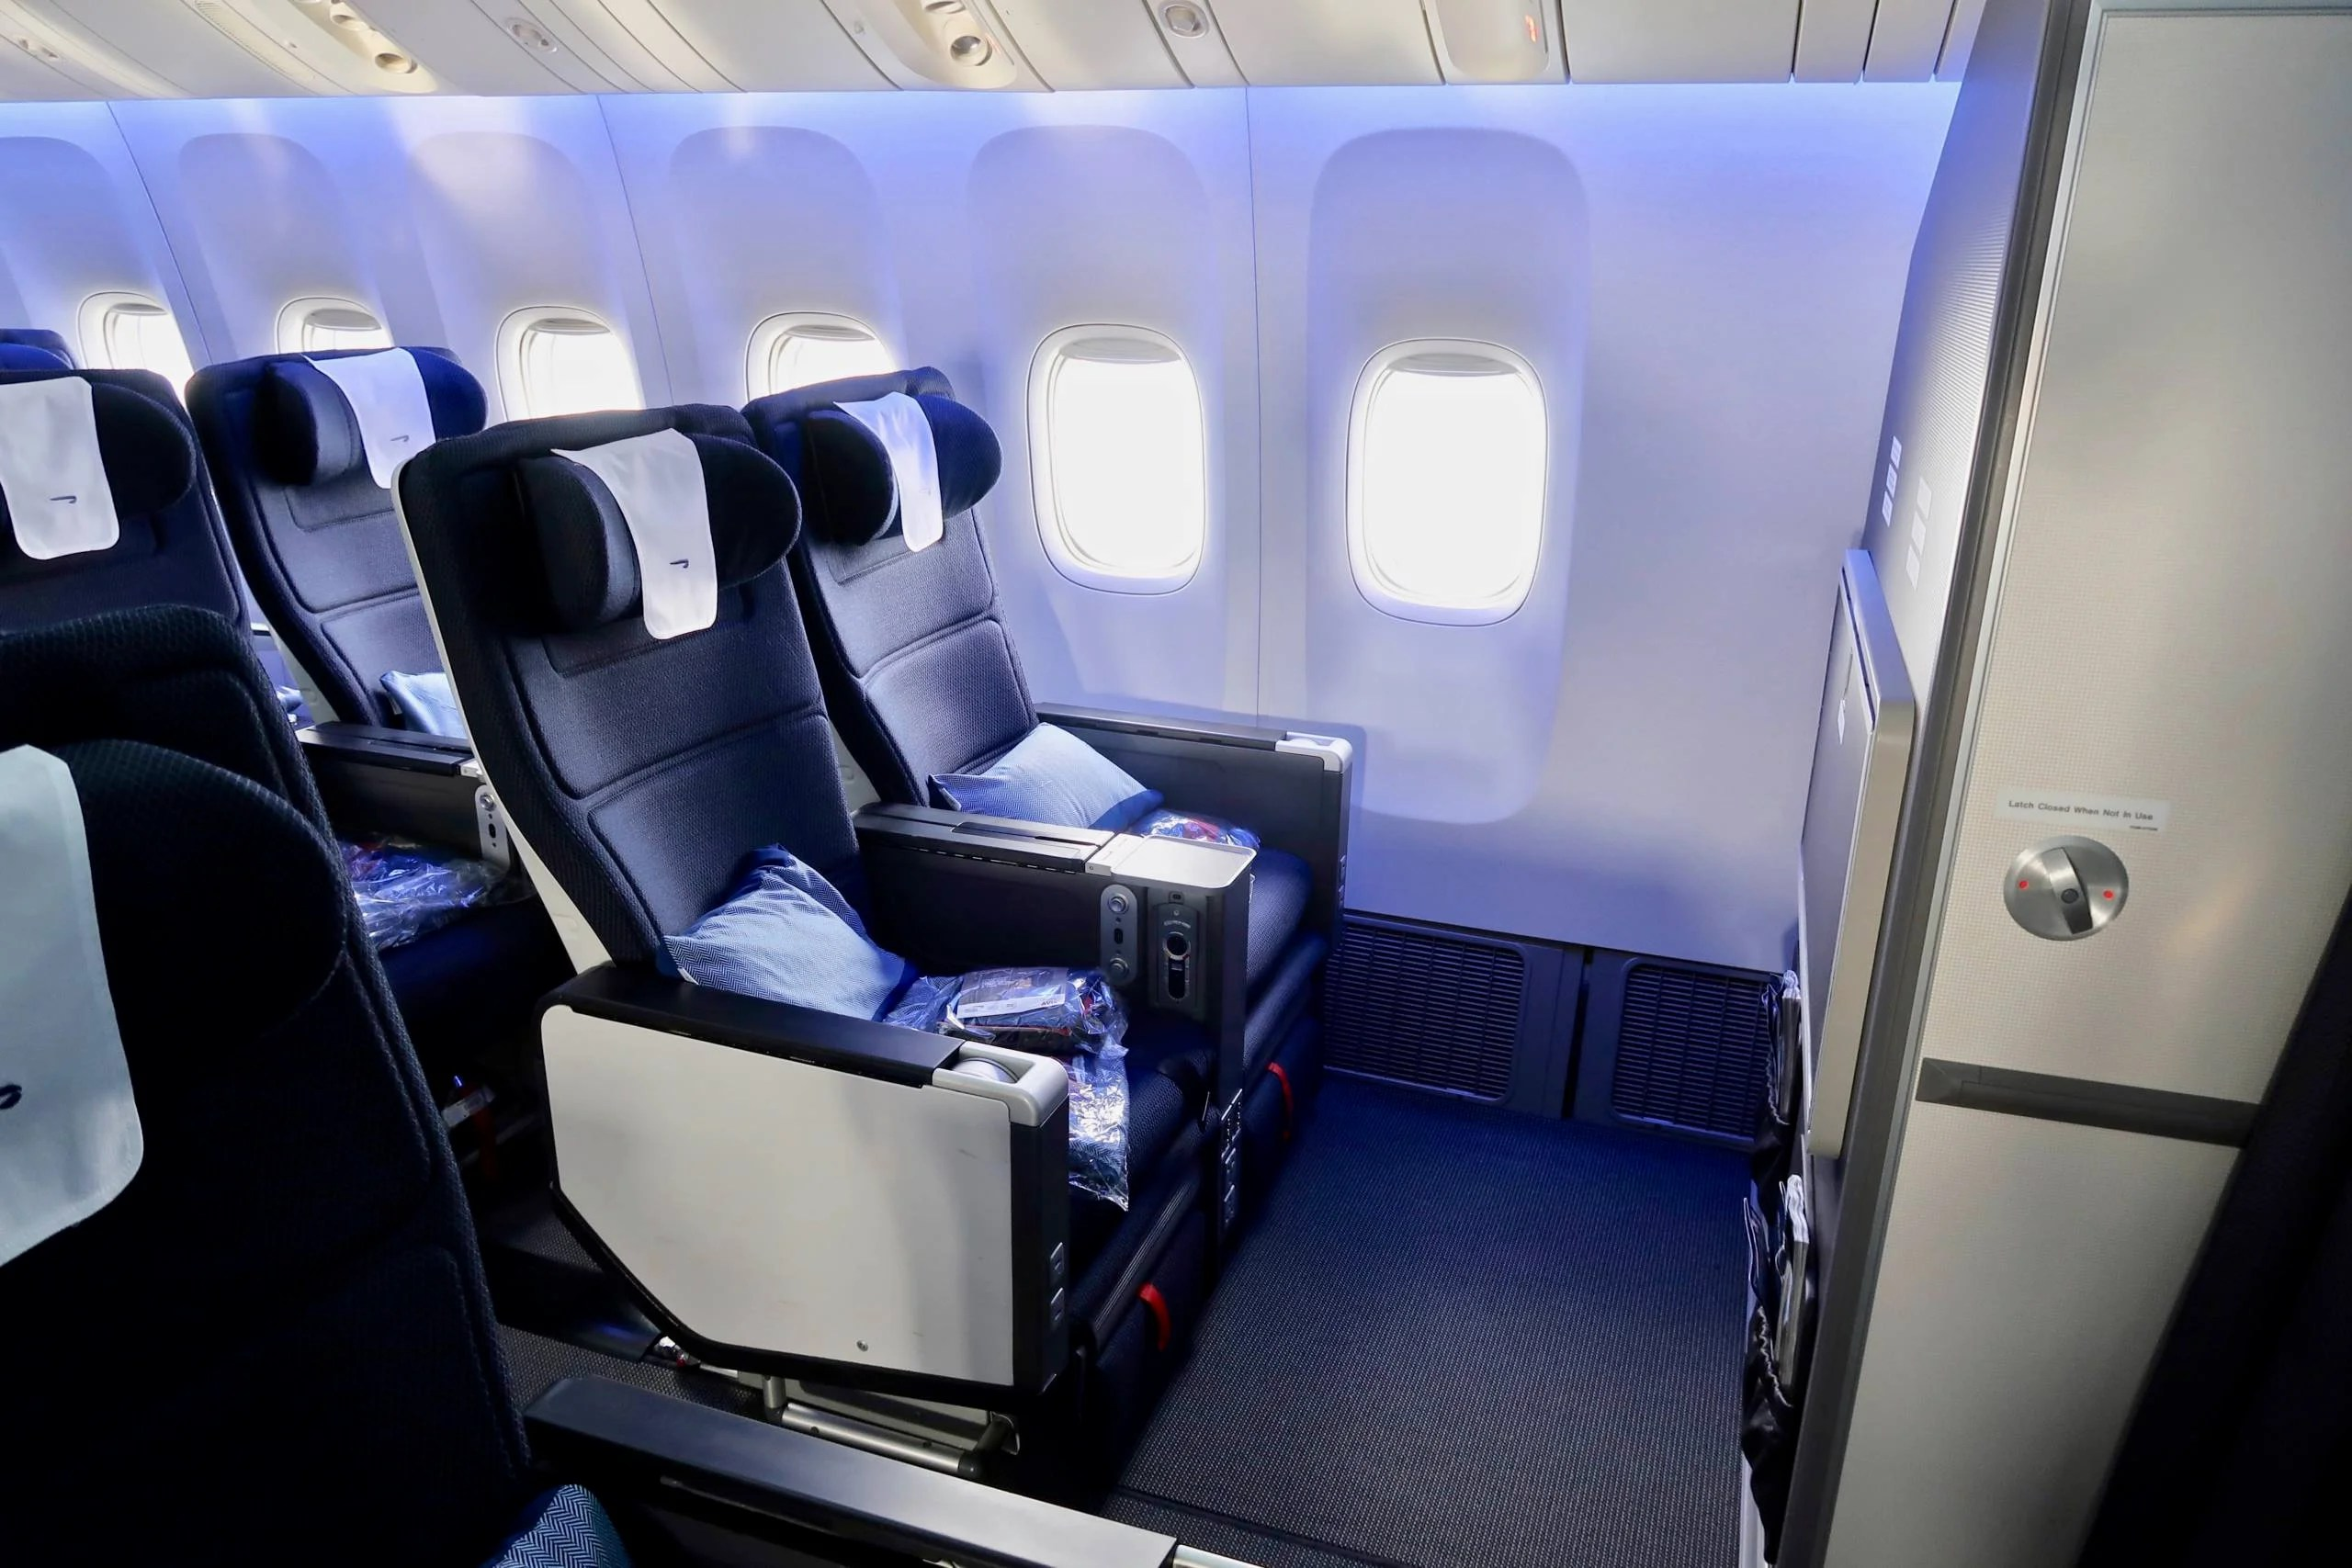 seats 20A and 20B in World Traveller Plus on the refurbished B777-200